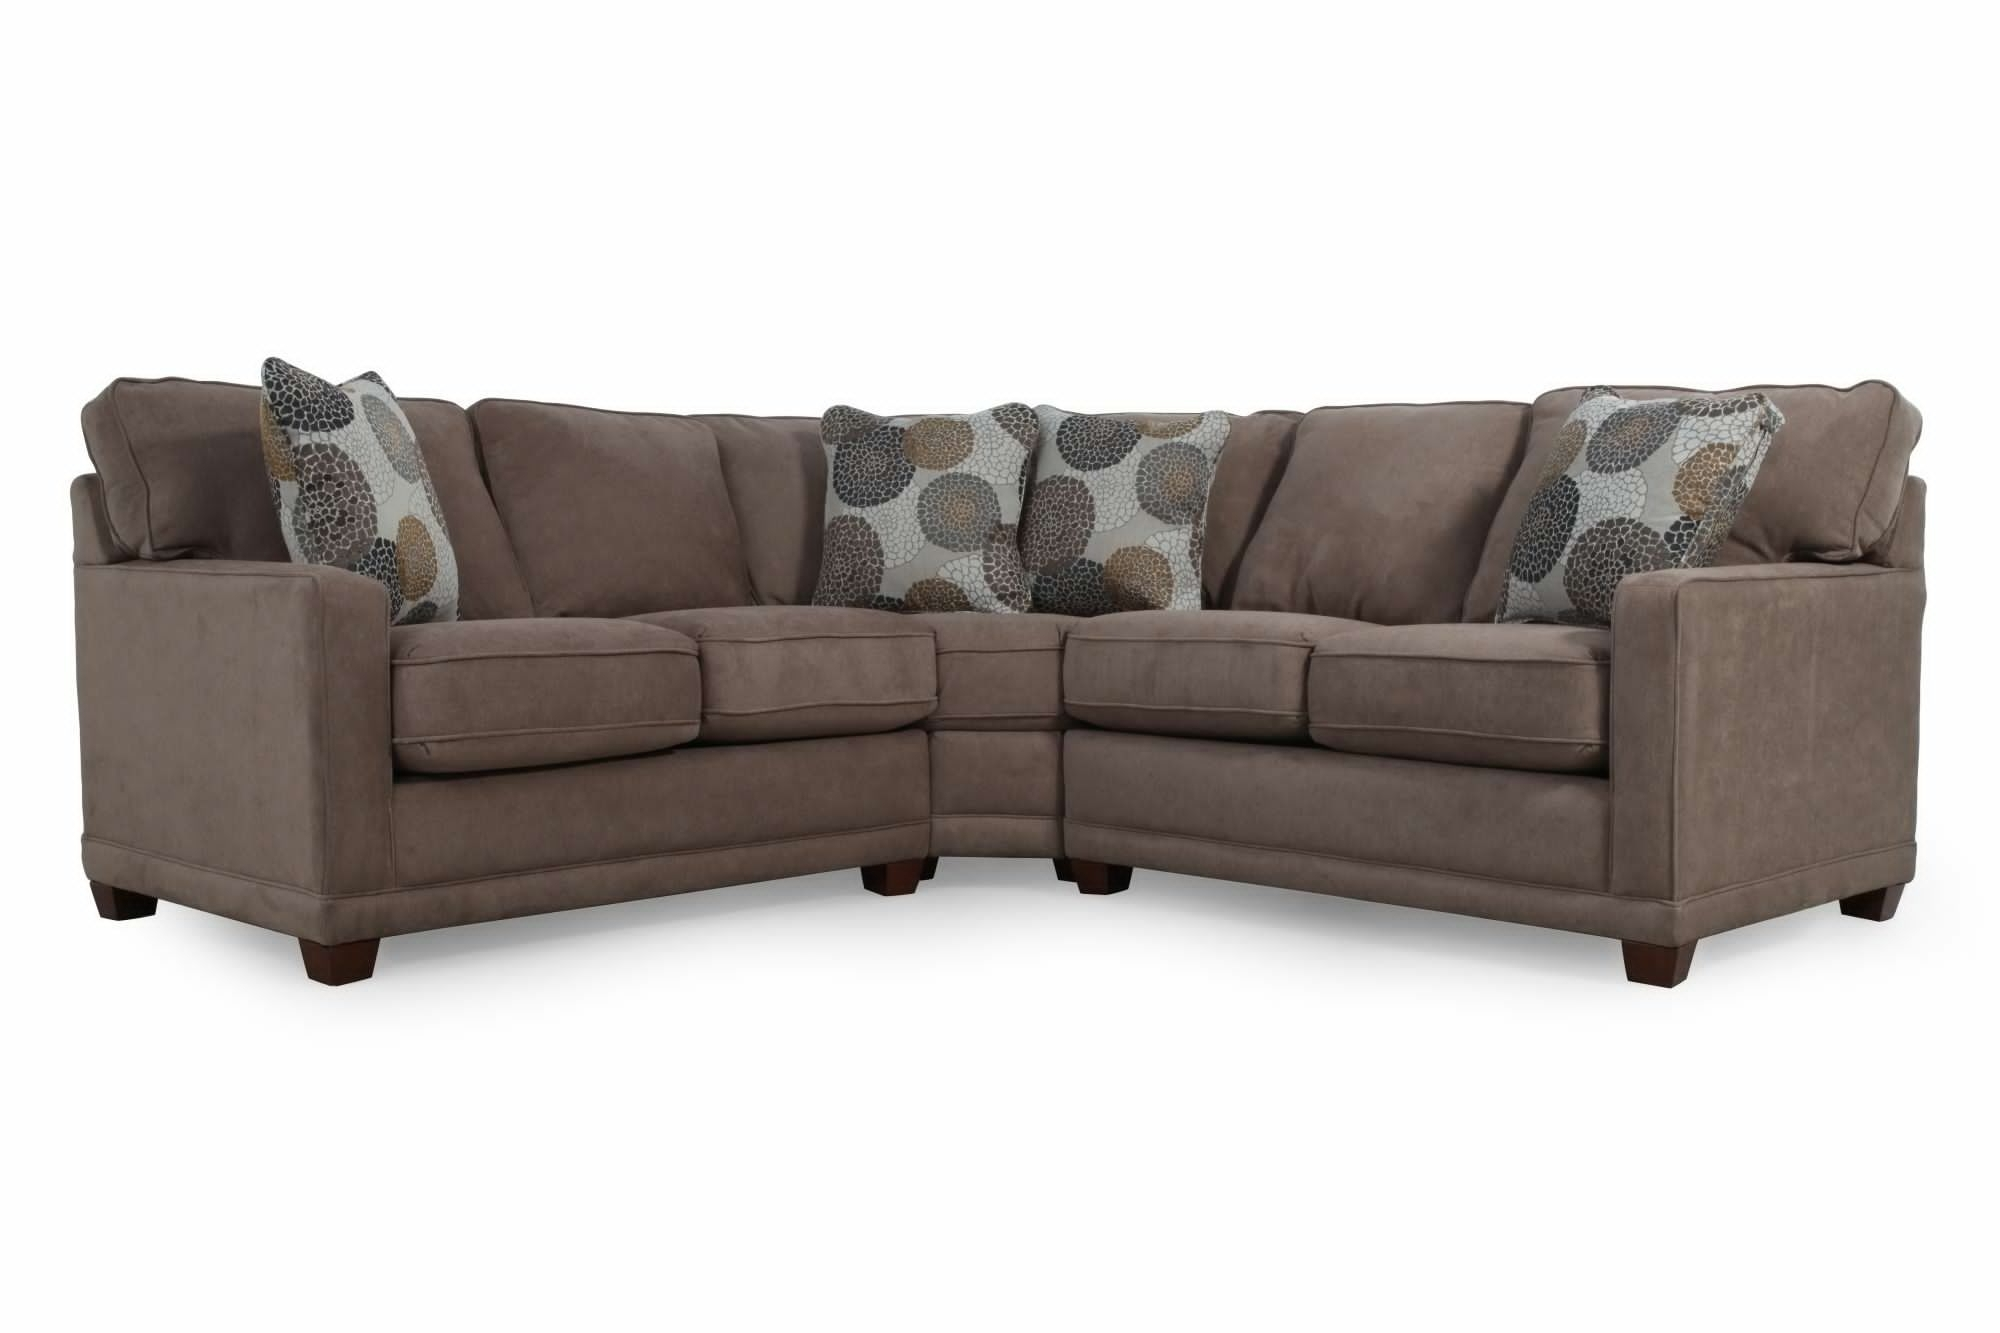 La Z Boy Sectional Sofas With Popular Sectional Sofa Design: Lazy Boy Sectional Sofa Sale James (View 9 of 20)